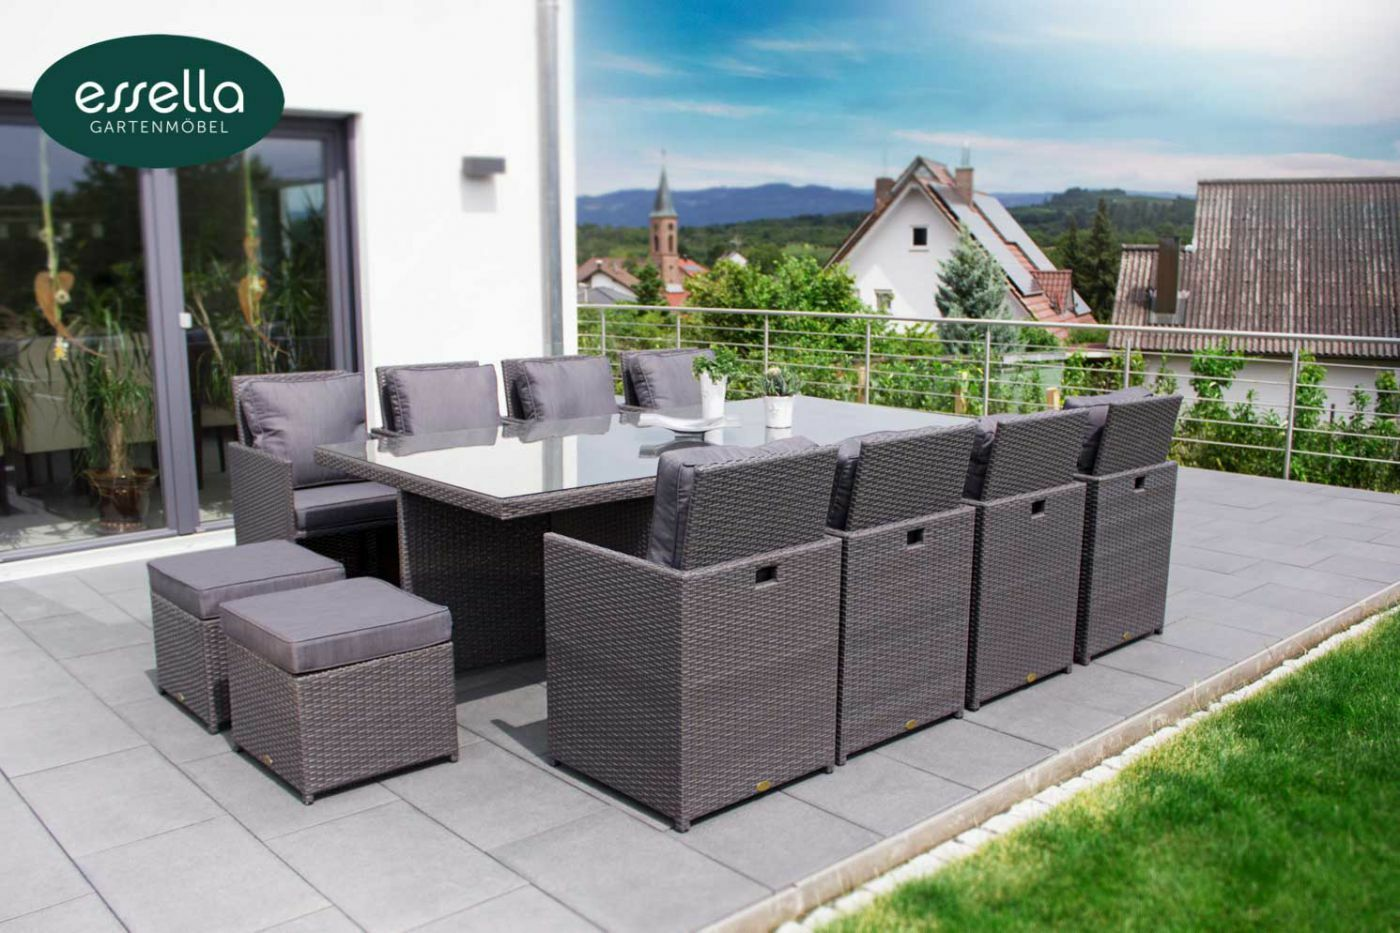 essella polyrattan sitzgruppe gartenm bel essgruppe rattan. Black Bedroom Furniture Sets. Home Design Ideas